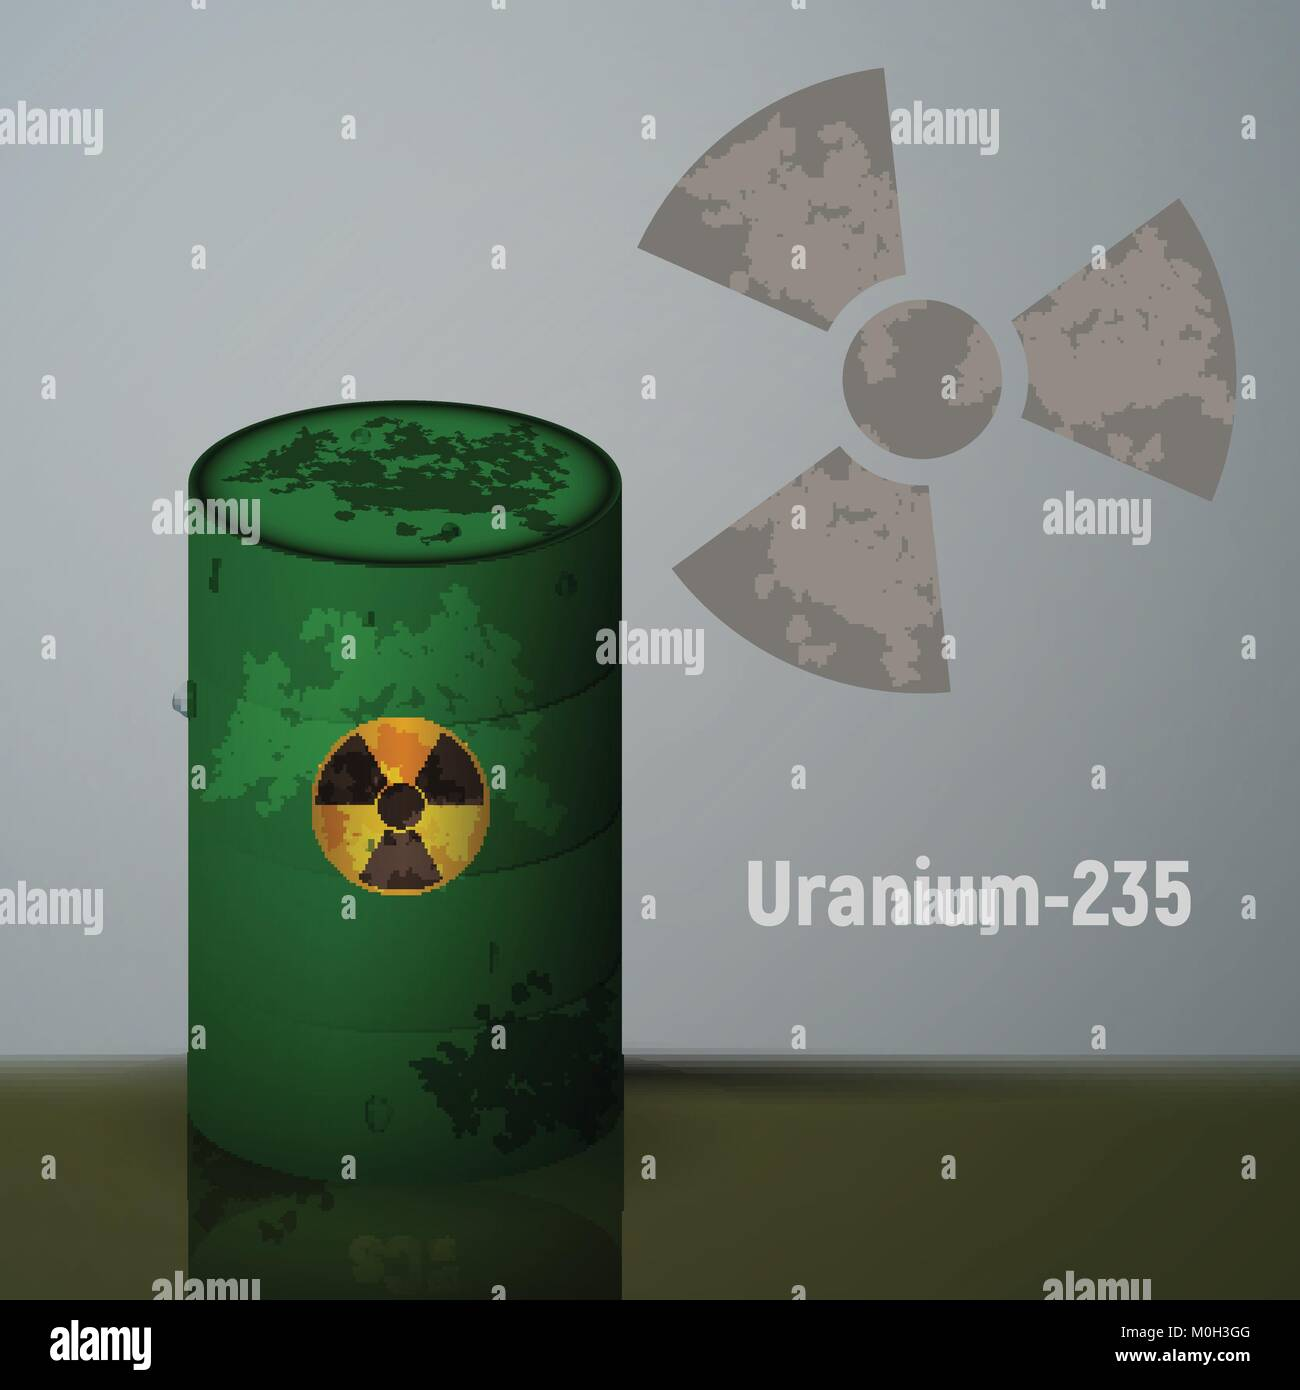 Radioactive uranium in the barrels. - Stock Image